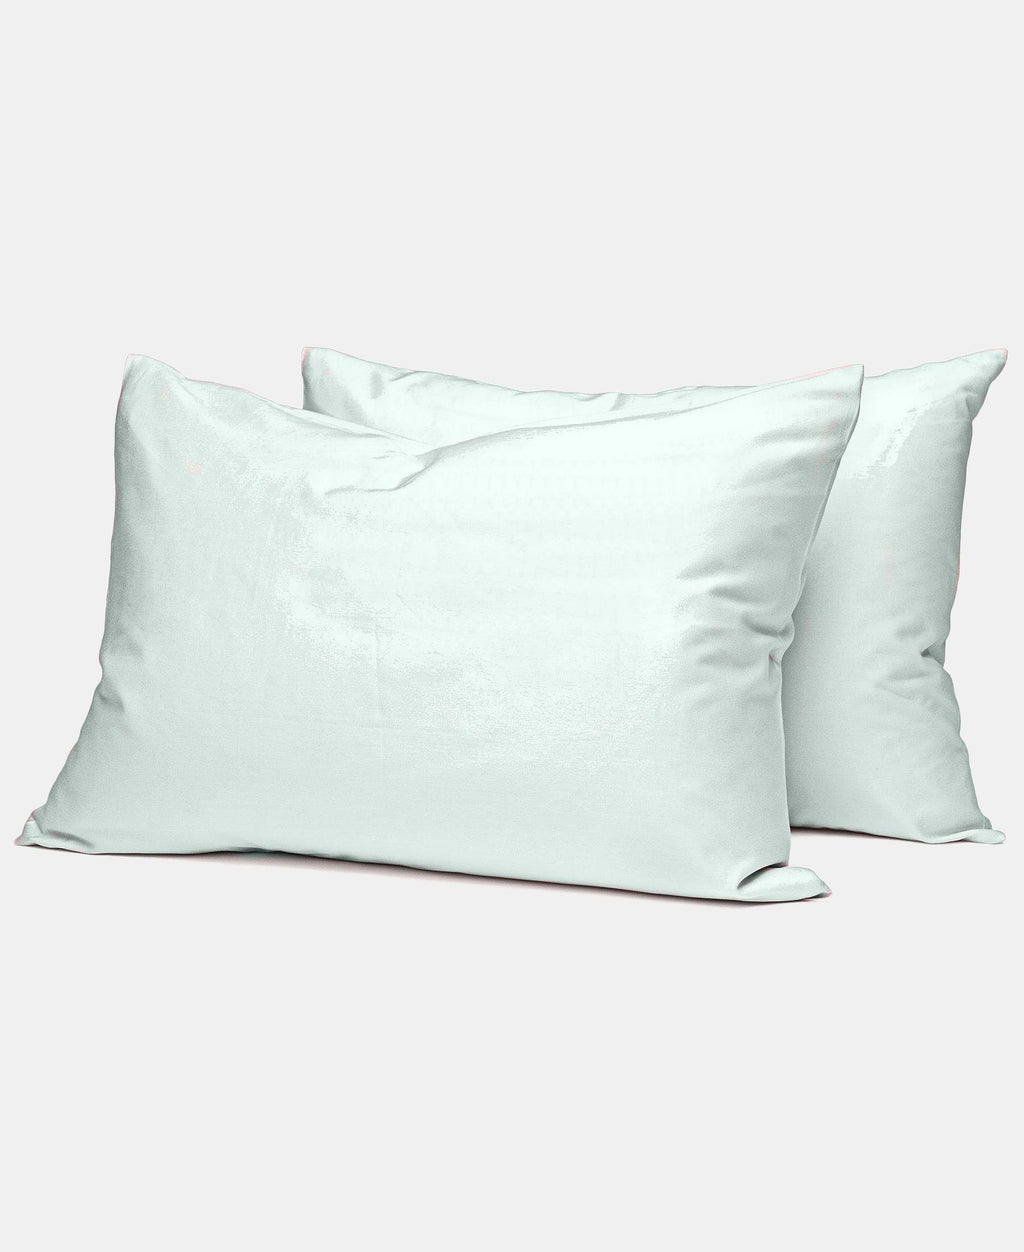 2 Pack 180 Thread Count Horrockses King Size Pillowcases - Duck Egg